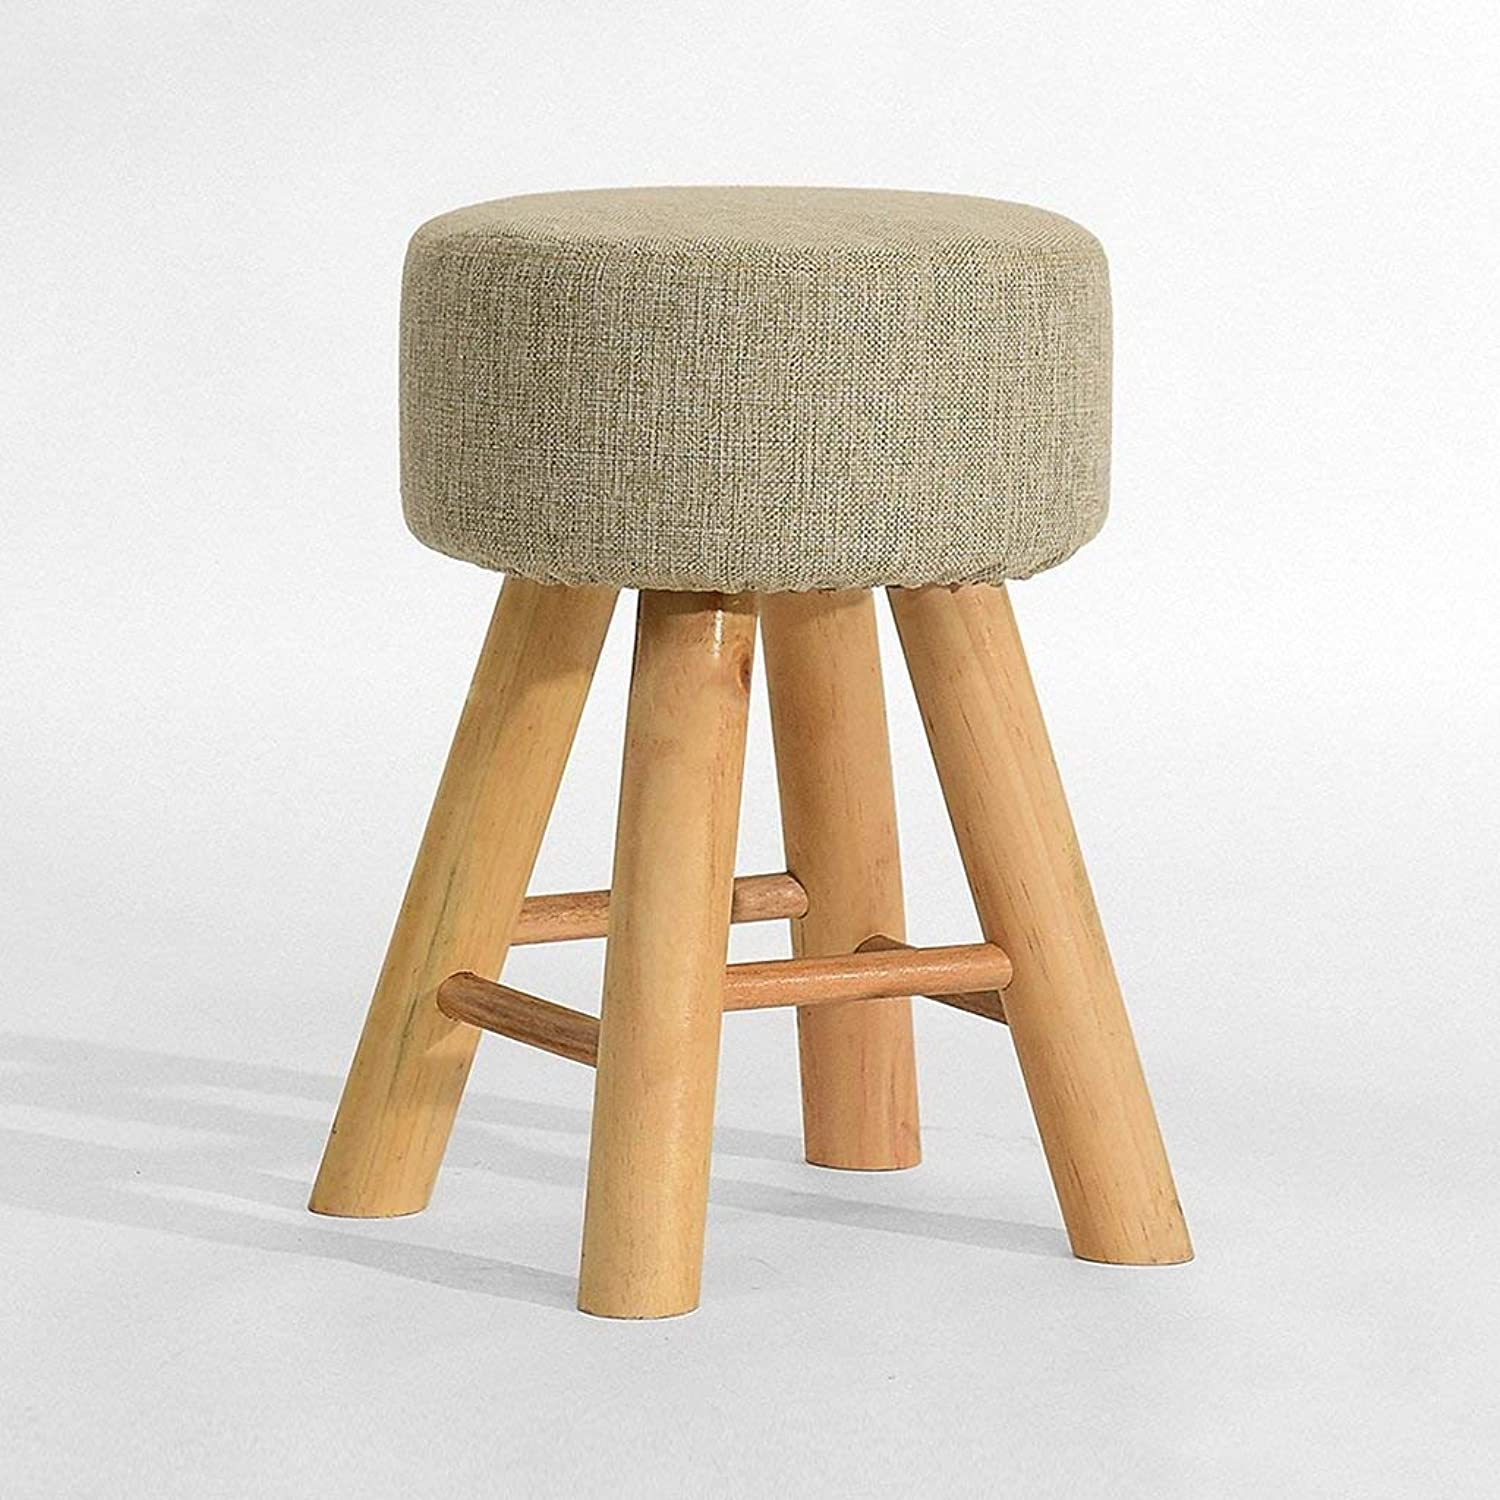 FENGTAIQIAN Solid wood dining stool fashion creative fabric stool dressing stool home stool - small stool (color   B)